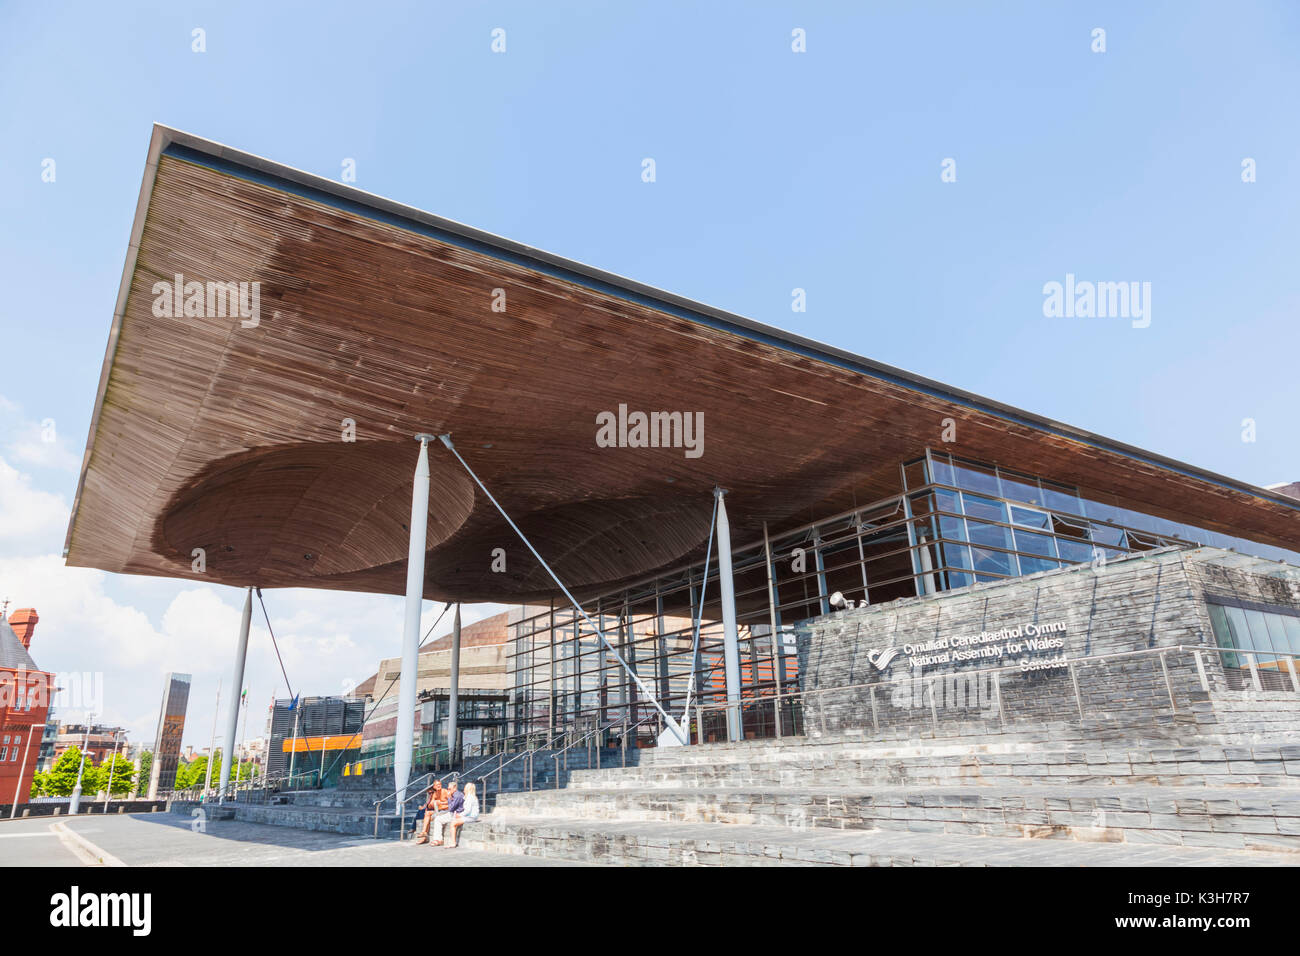 Wales, Cardiff, Cardiff Bay, National Assembly for Wales Building - Stock Image